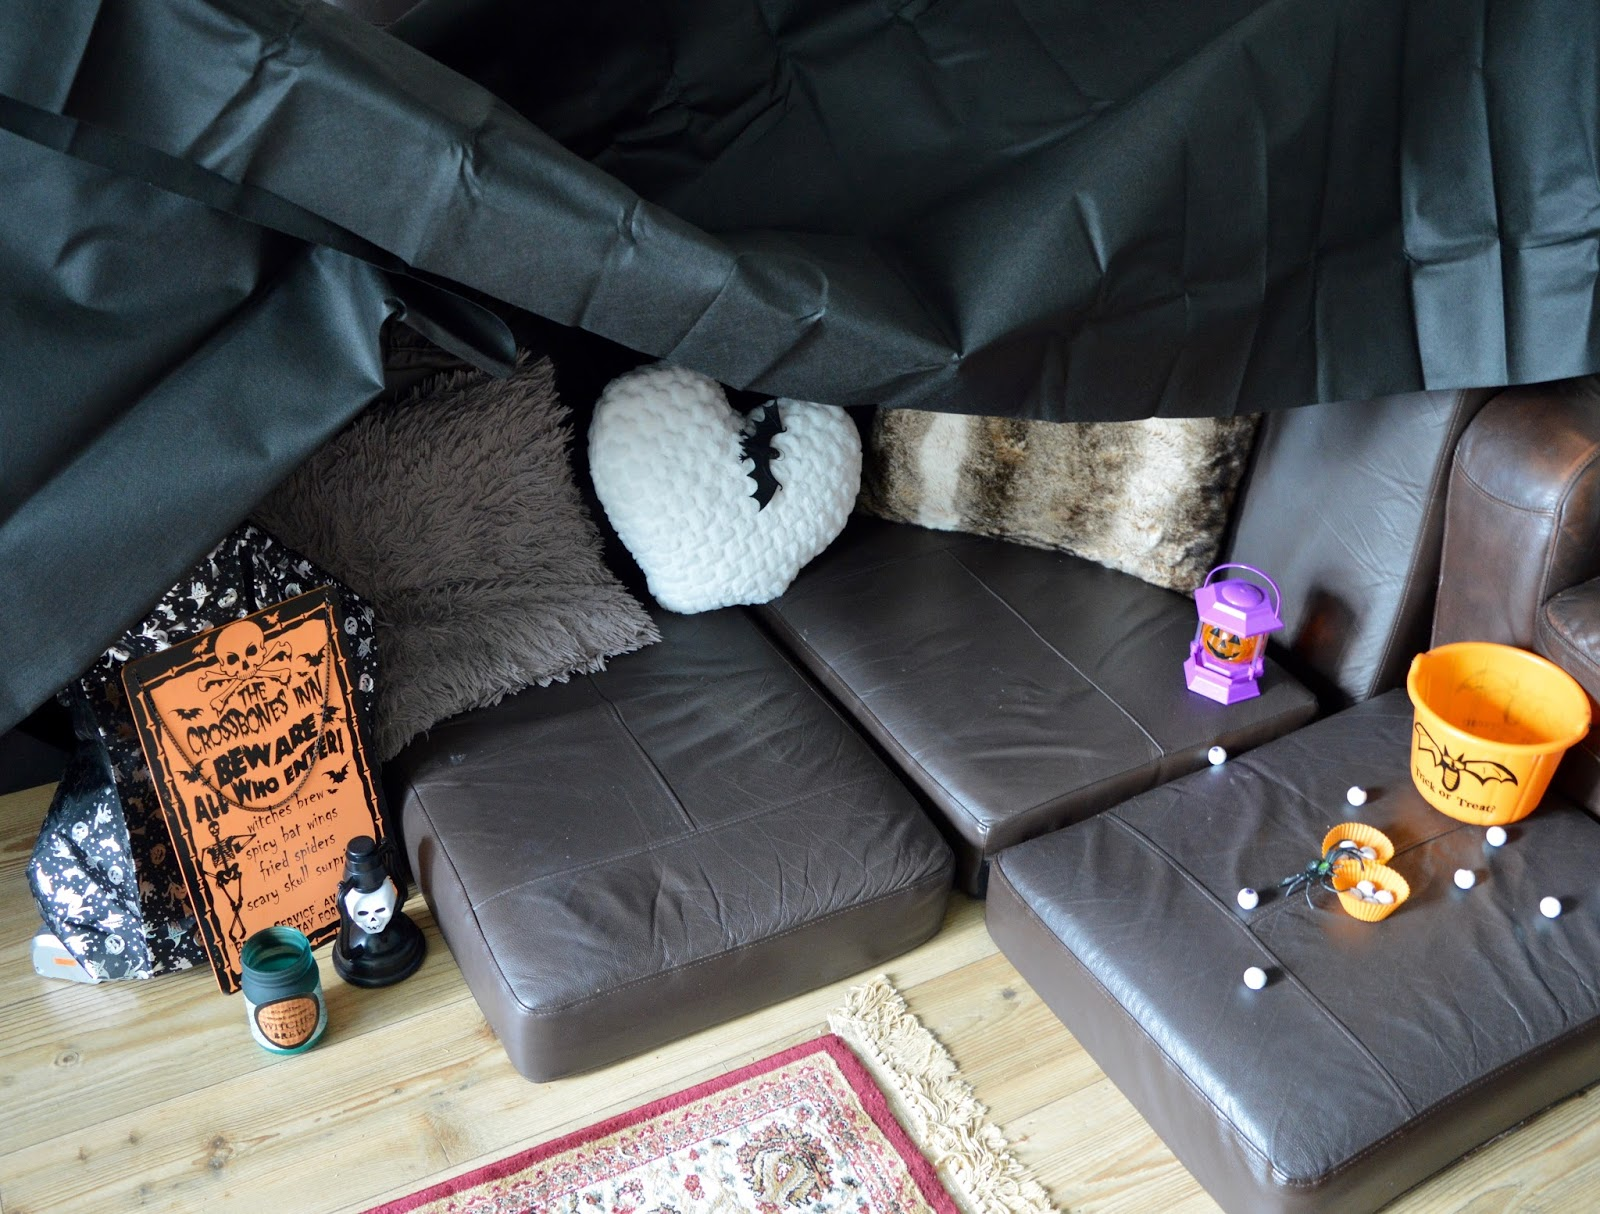 How to create an awesome sofa den for Halloween with DFS #MySofaDen